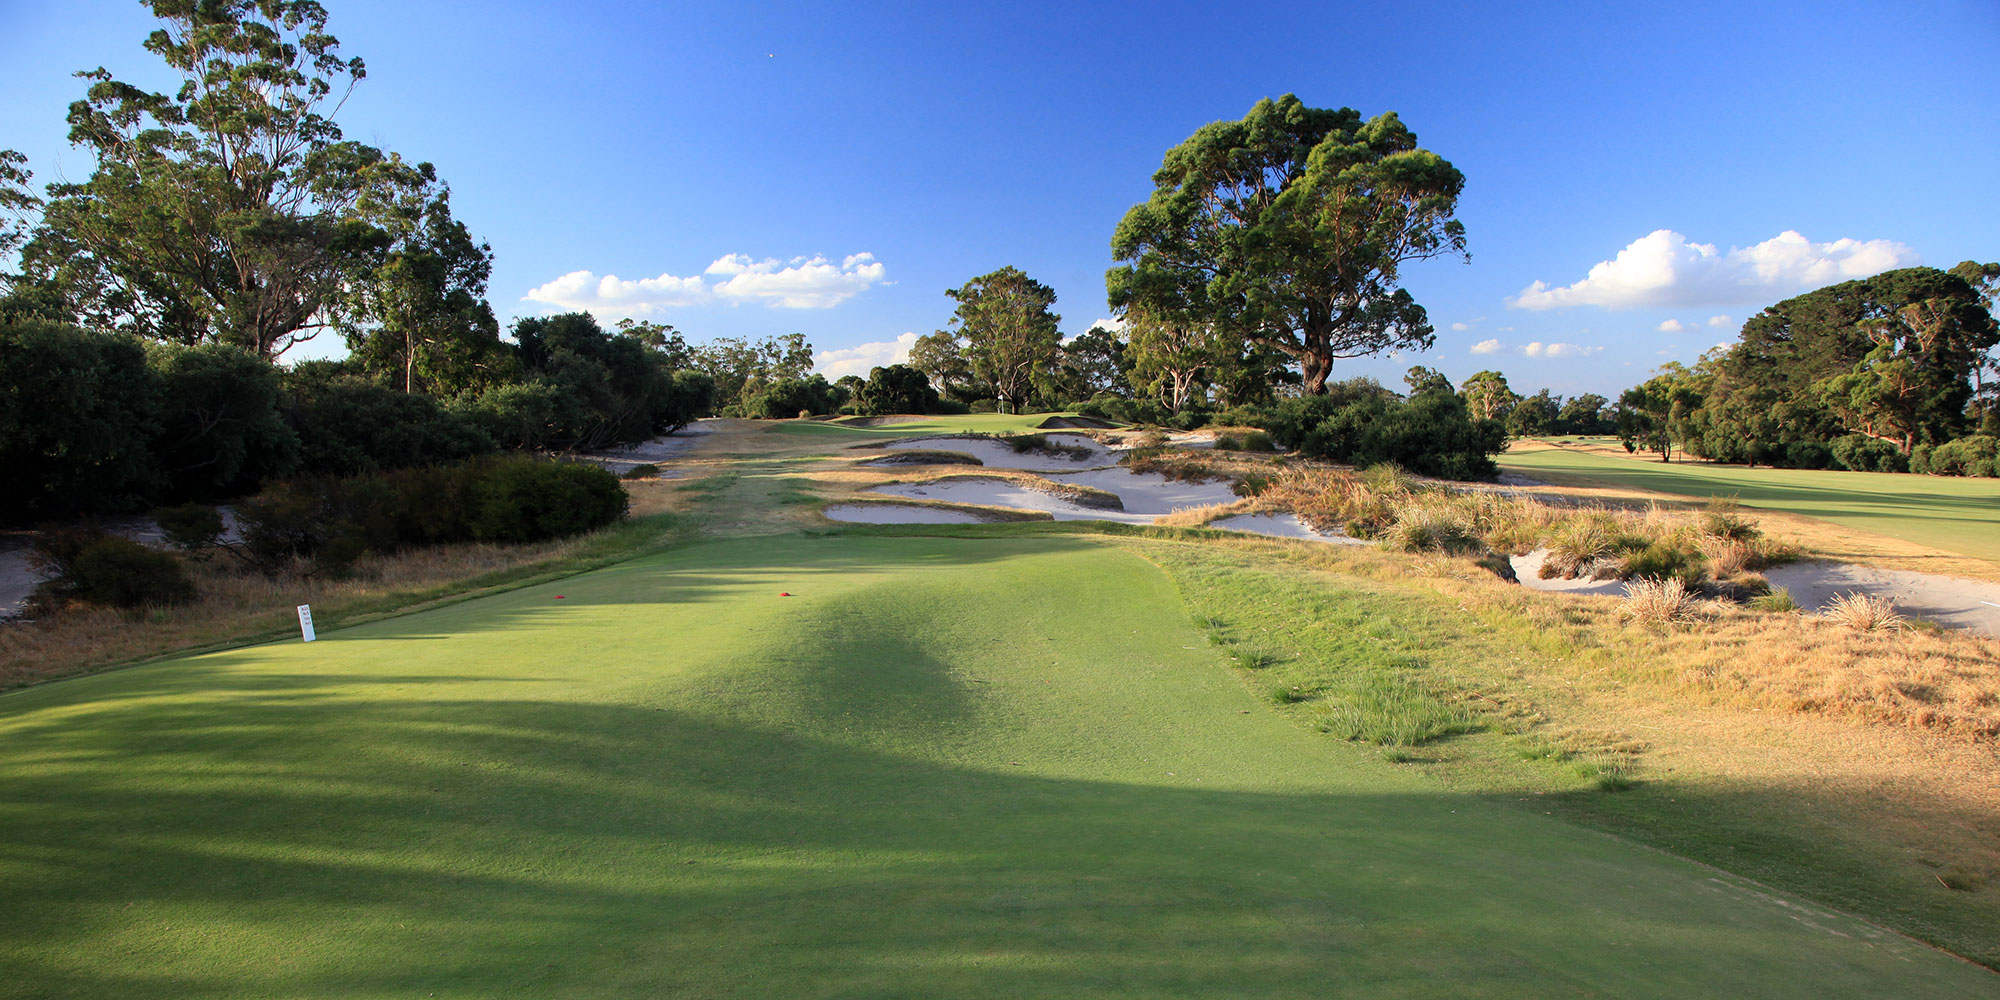 Melbourne Sandbelt Tour | 4 - 8 October 2021 | 4 nights, 5 games